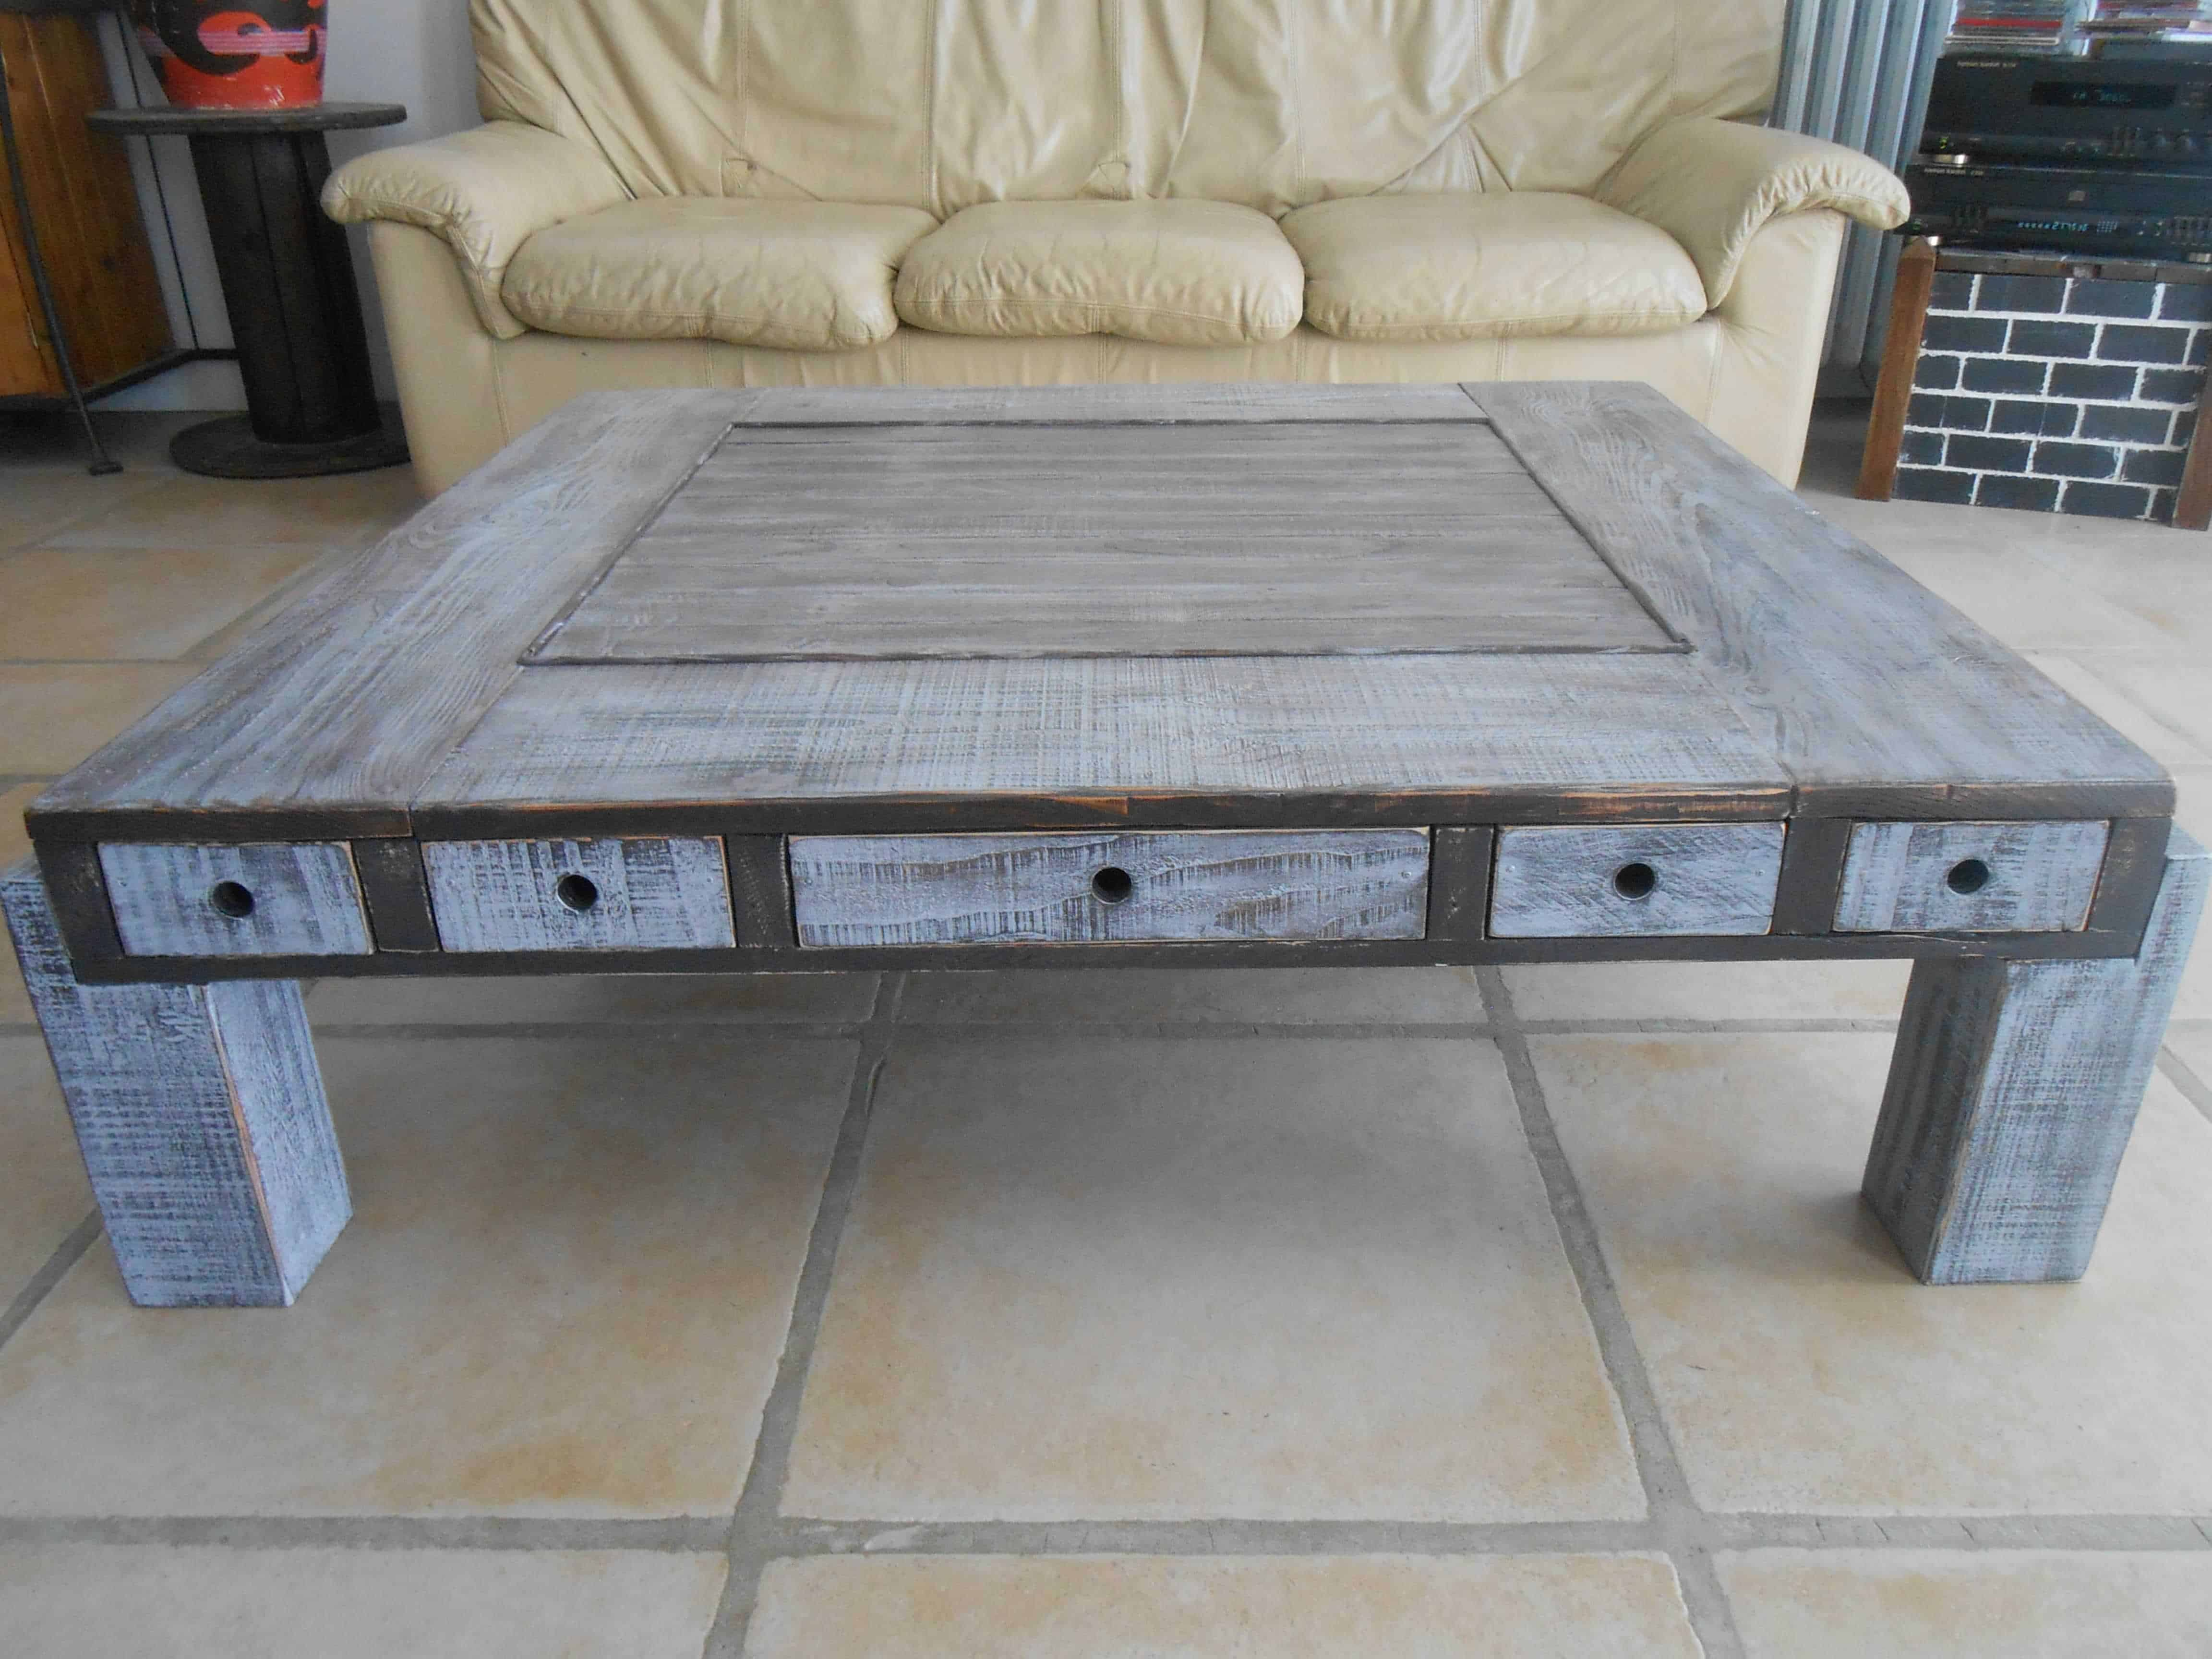 Table basse palette et pin douglas pallet douglas fir coffee table - Fabrication table basse palette ...